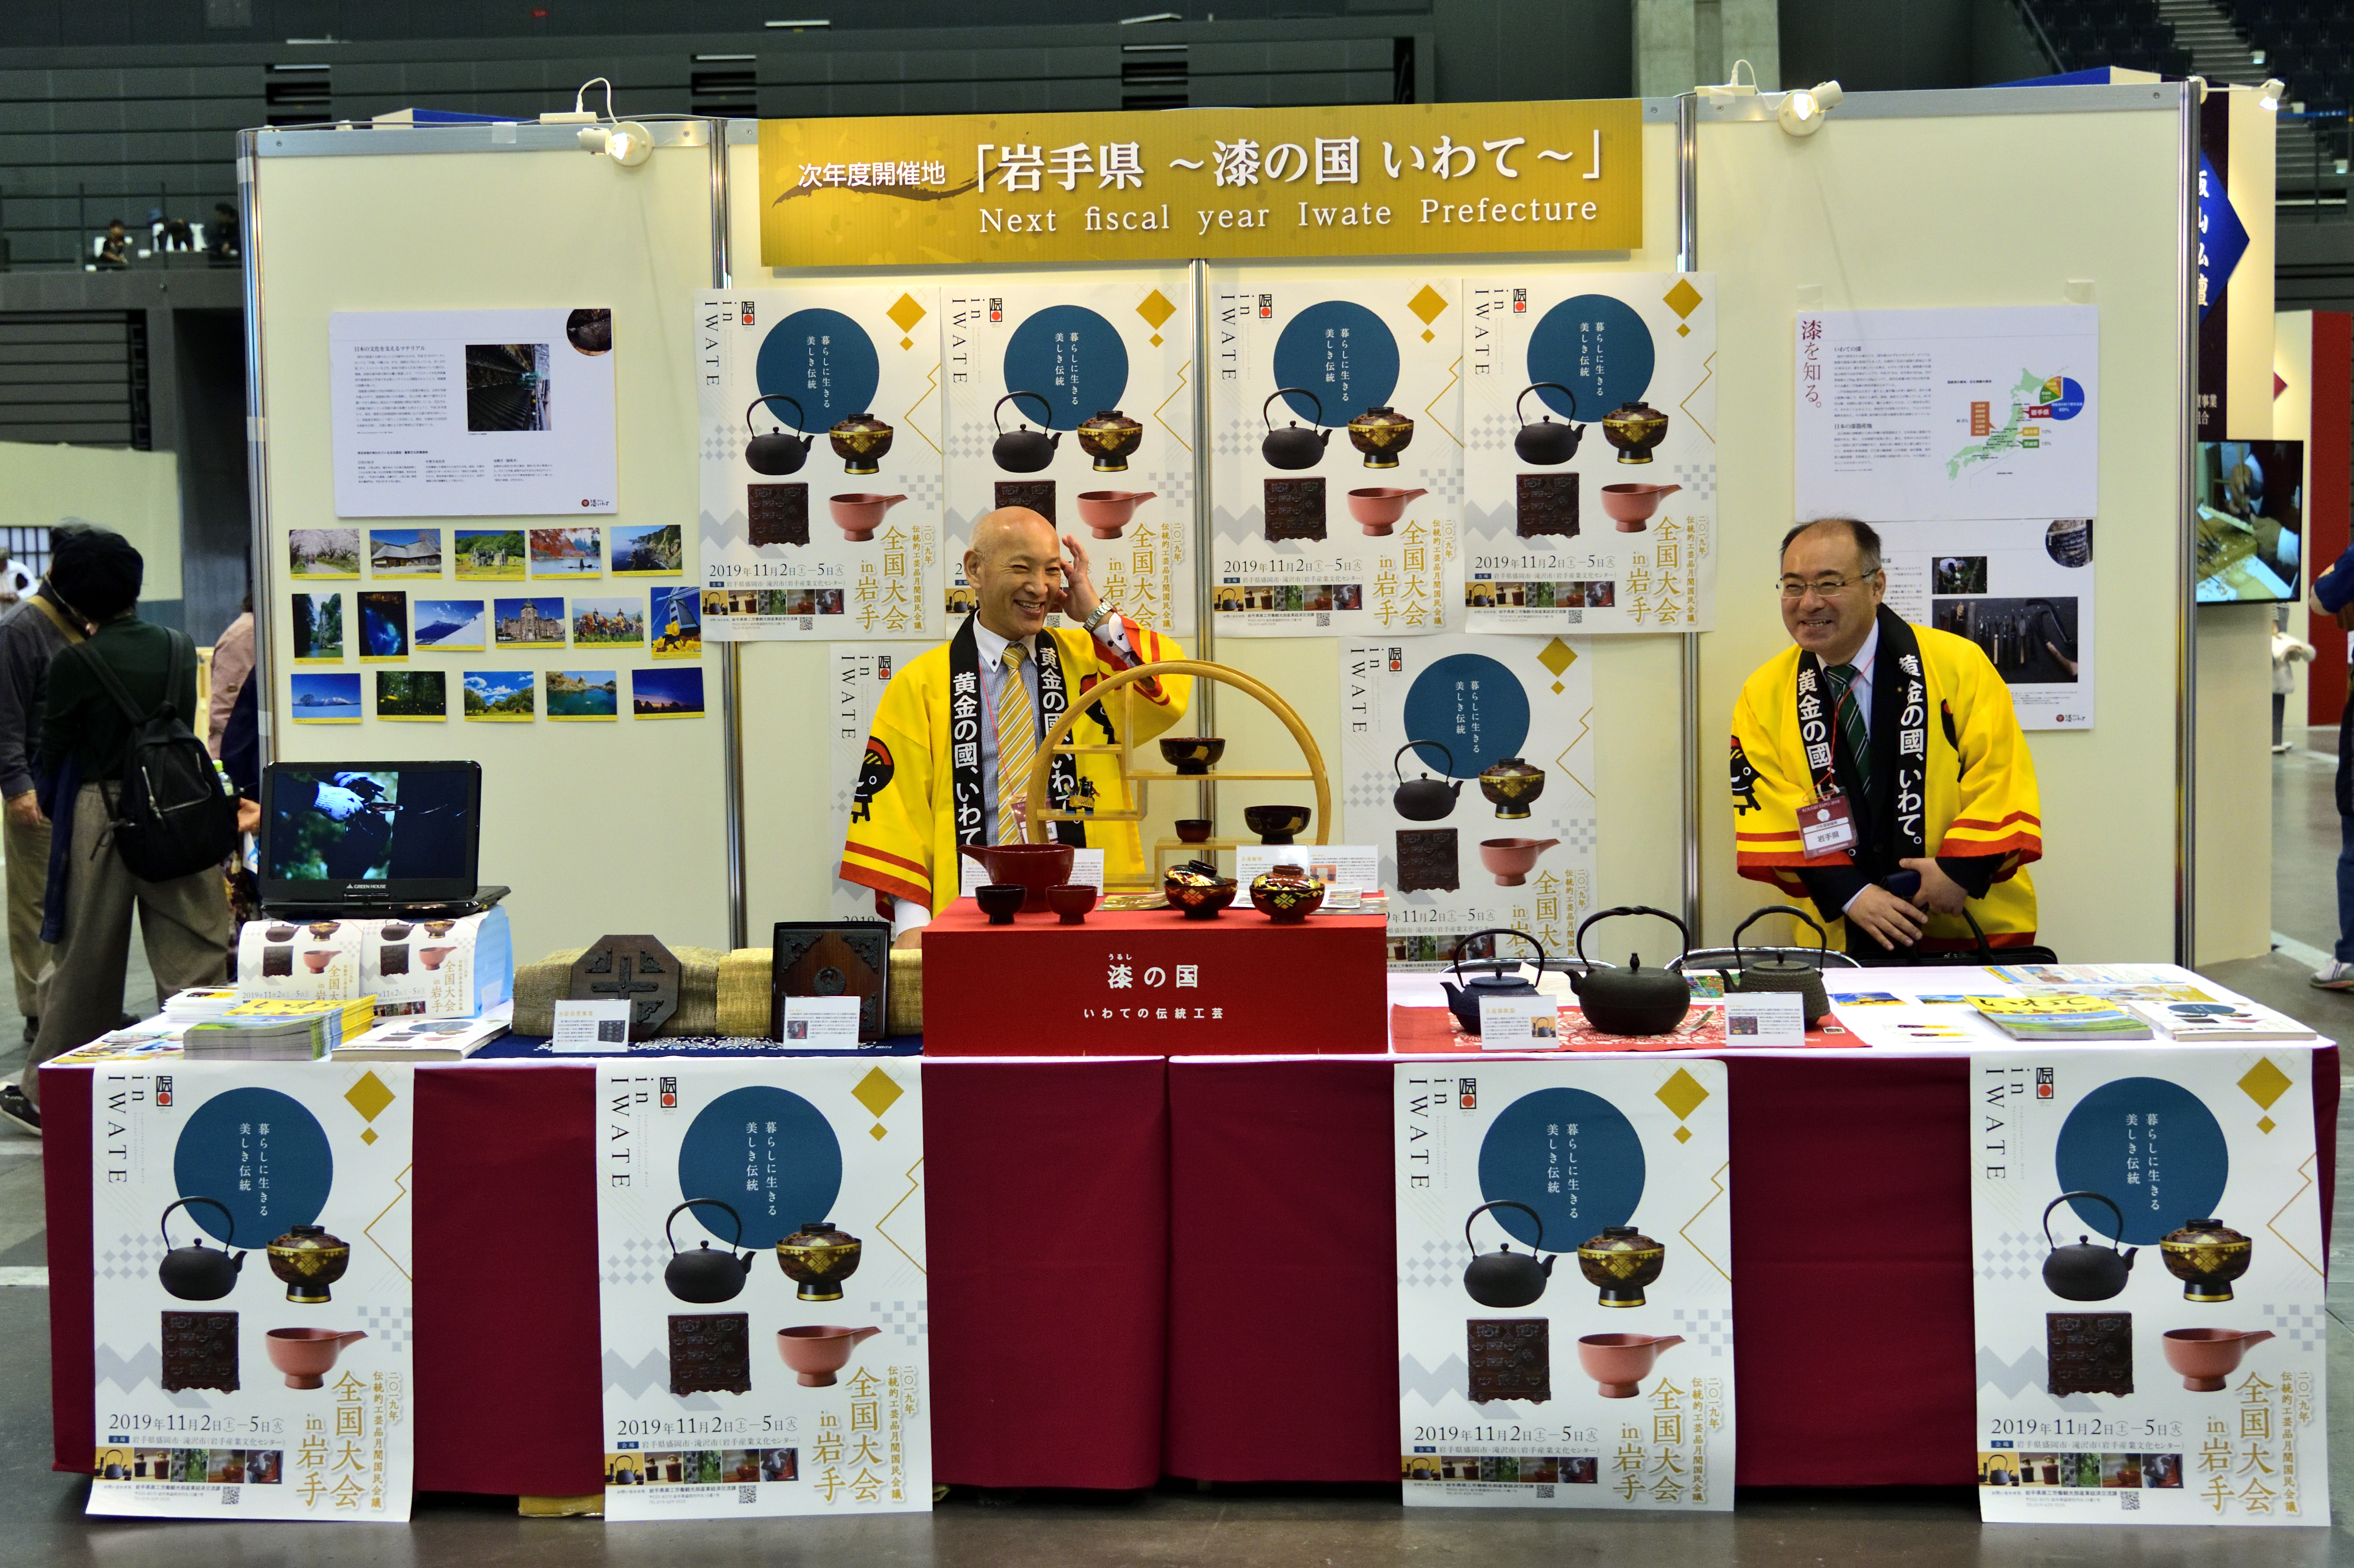 KOUGEI EXPO IN IWATEのアピールブース